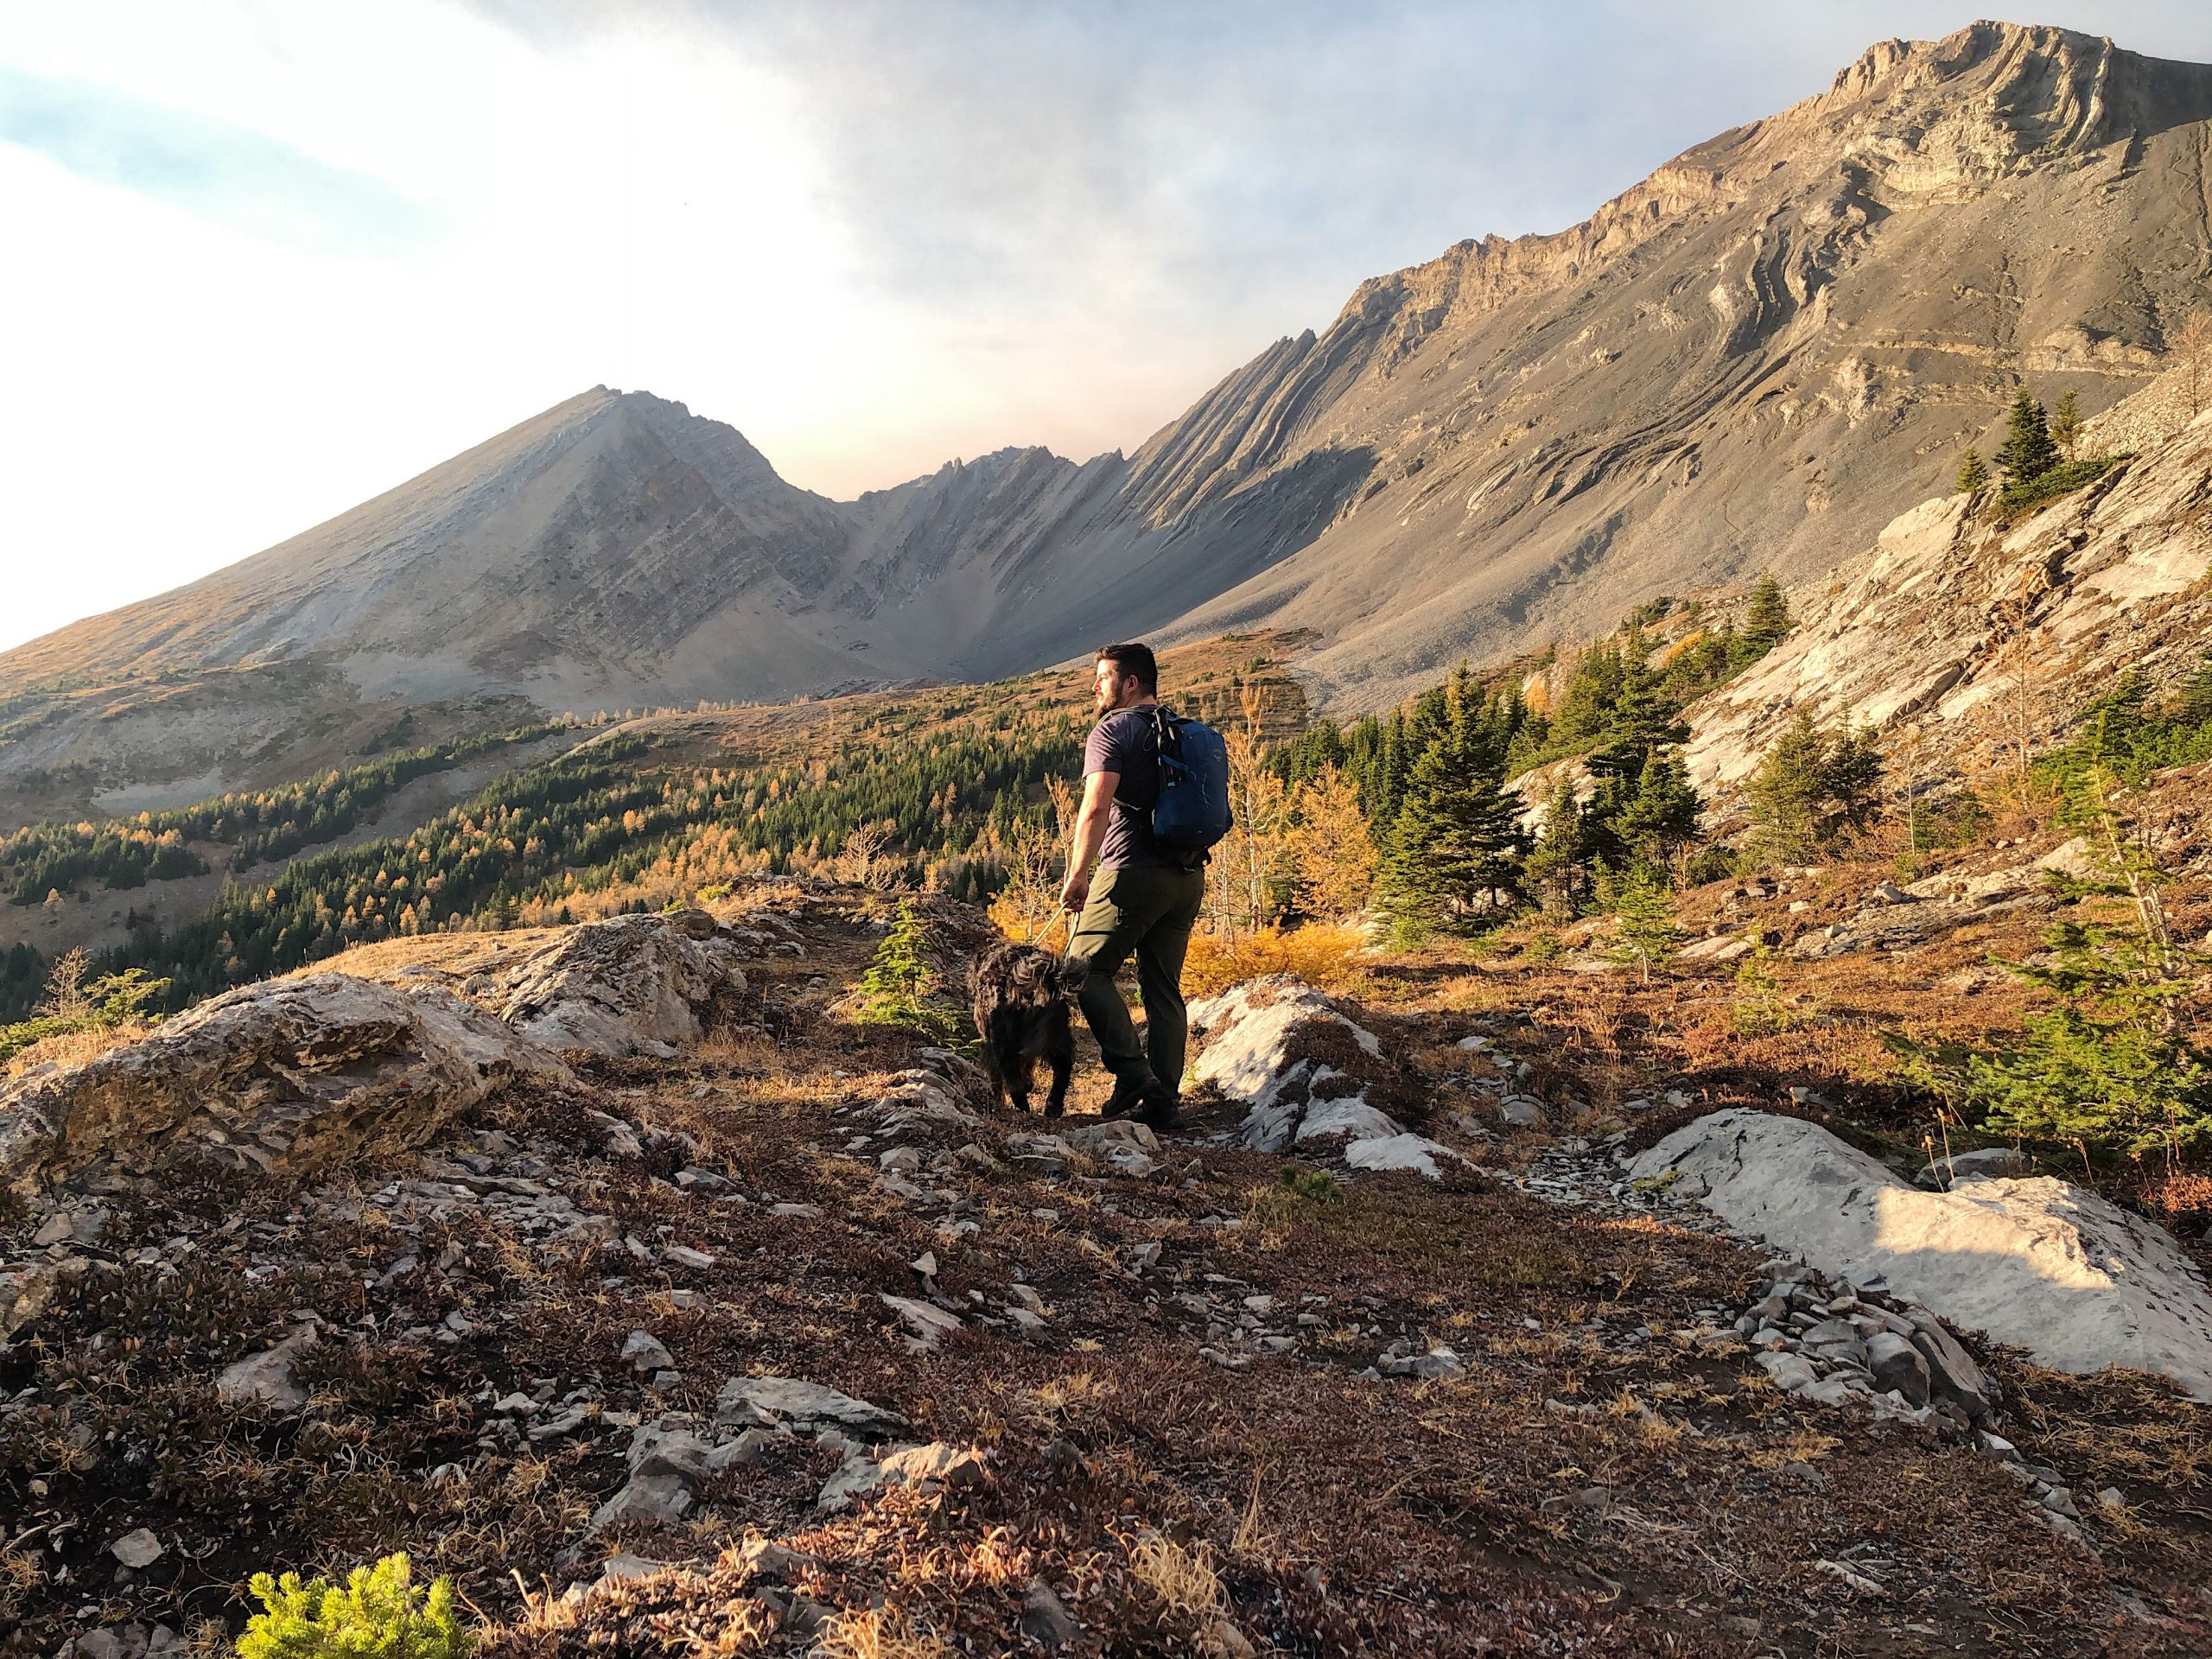 The Arethusa Cirque Hike in  Kananaskis Country is Perfect for Autumn via @outandacross